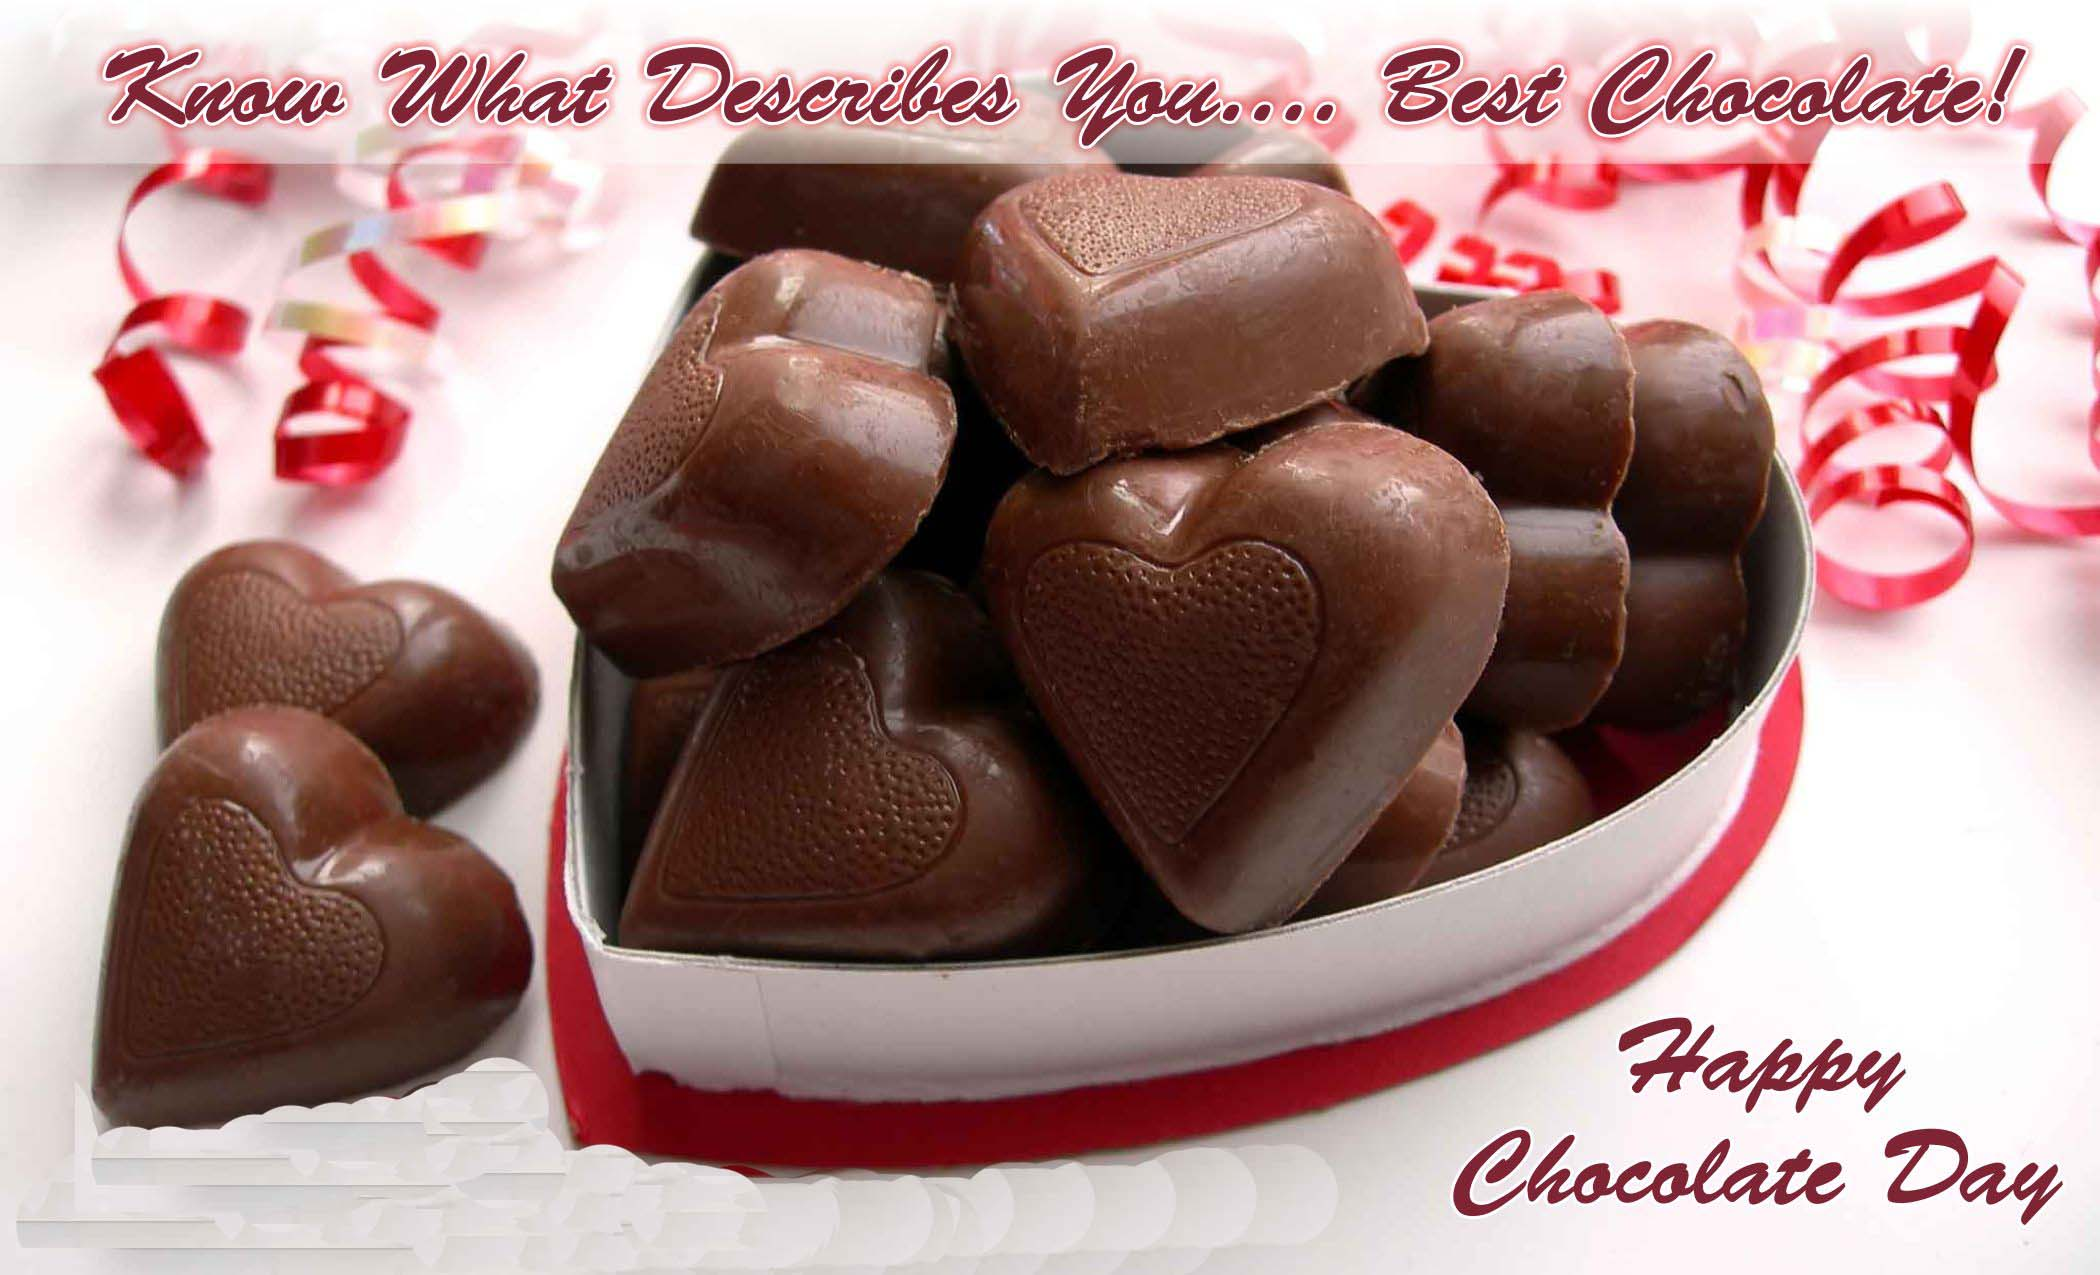 Chocolate Day Status for Whatsapp and Messages for Facebook